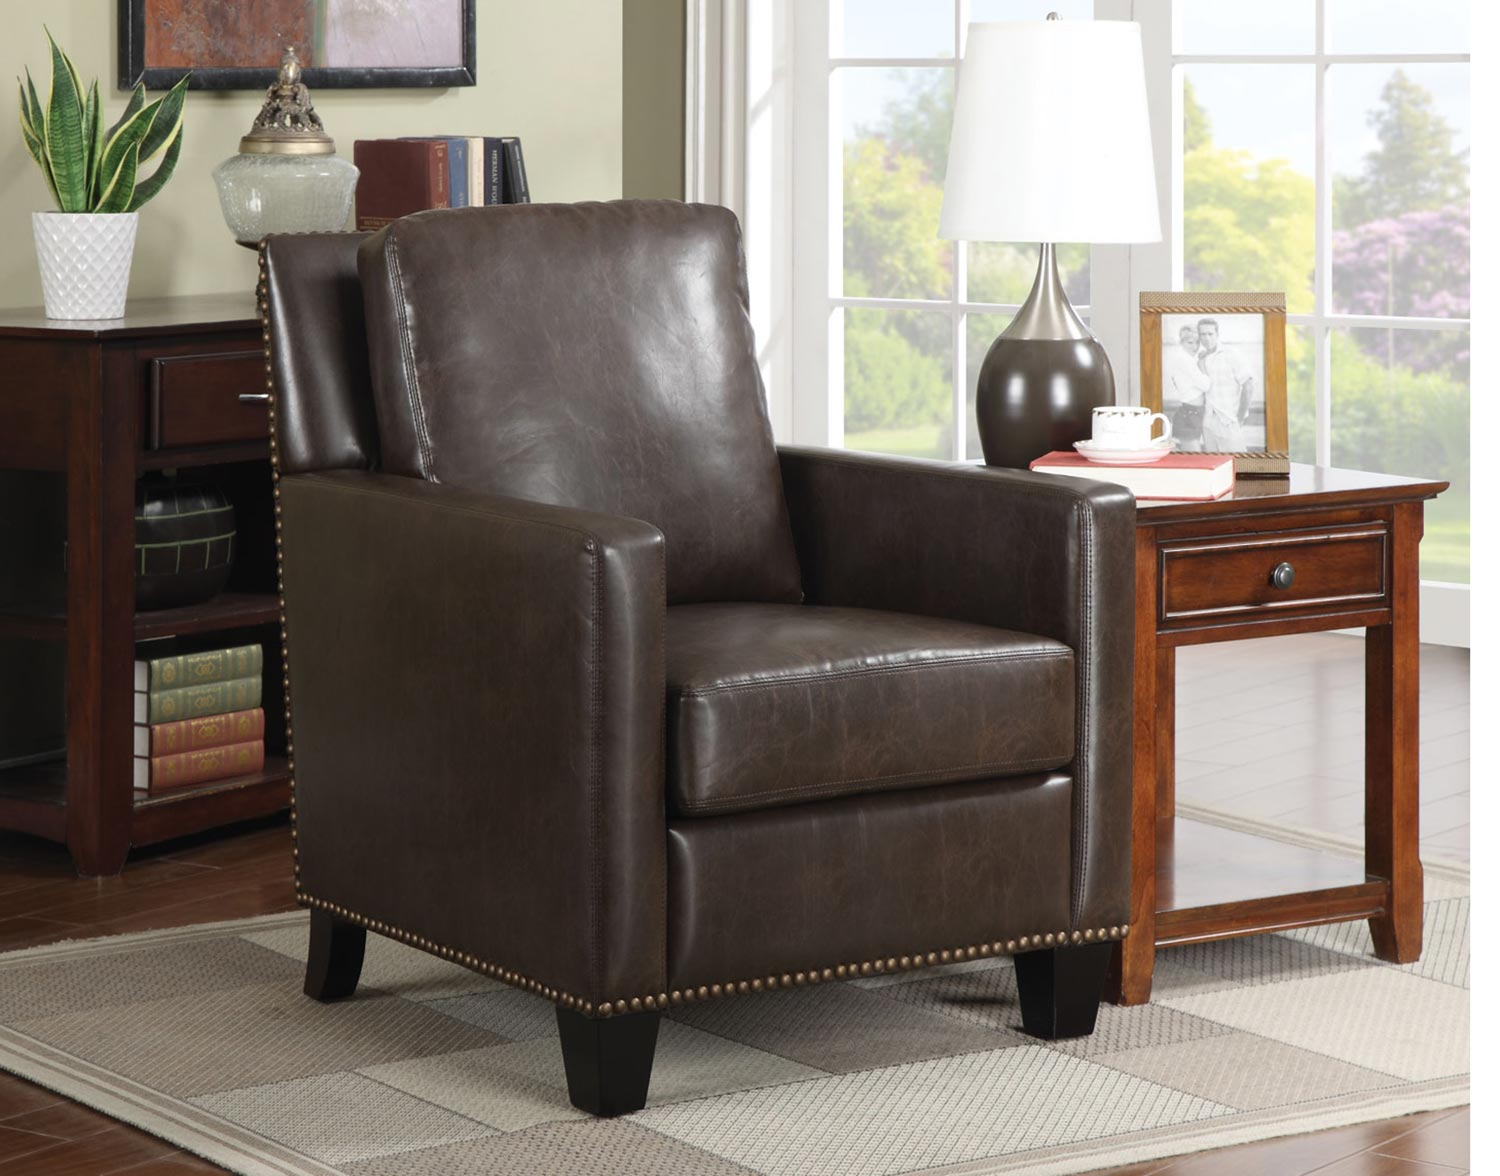 Coaster 902174 Accent Chair - Brown